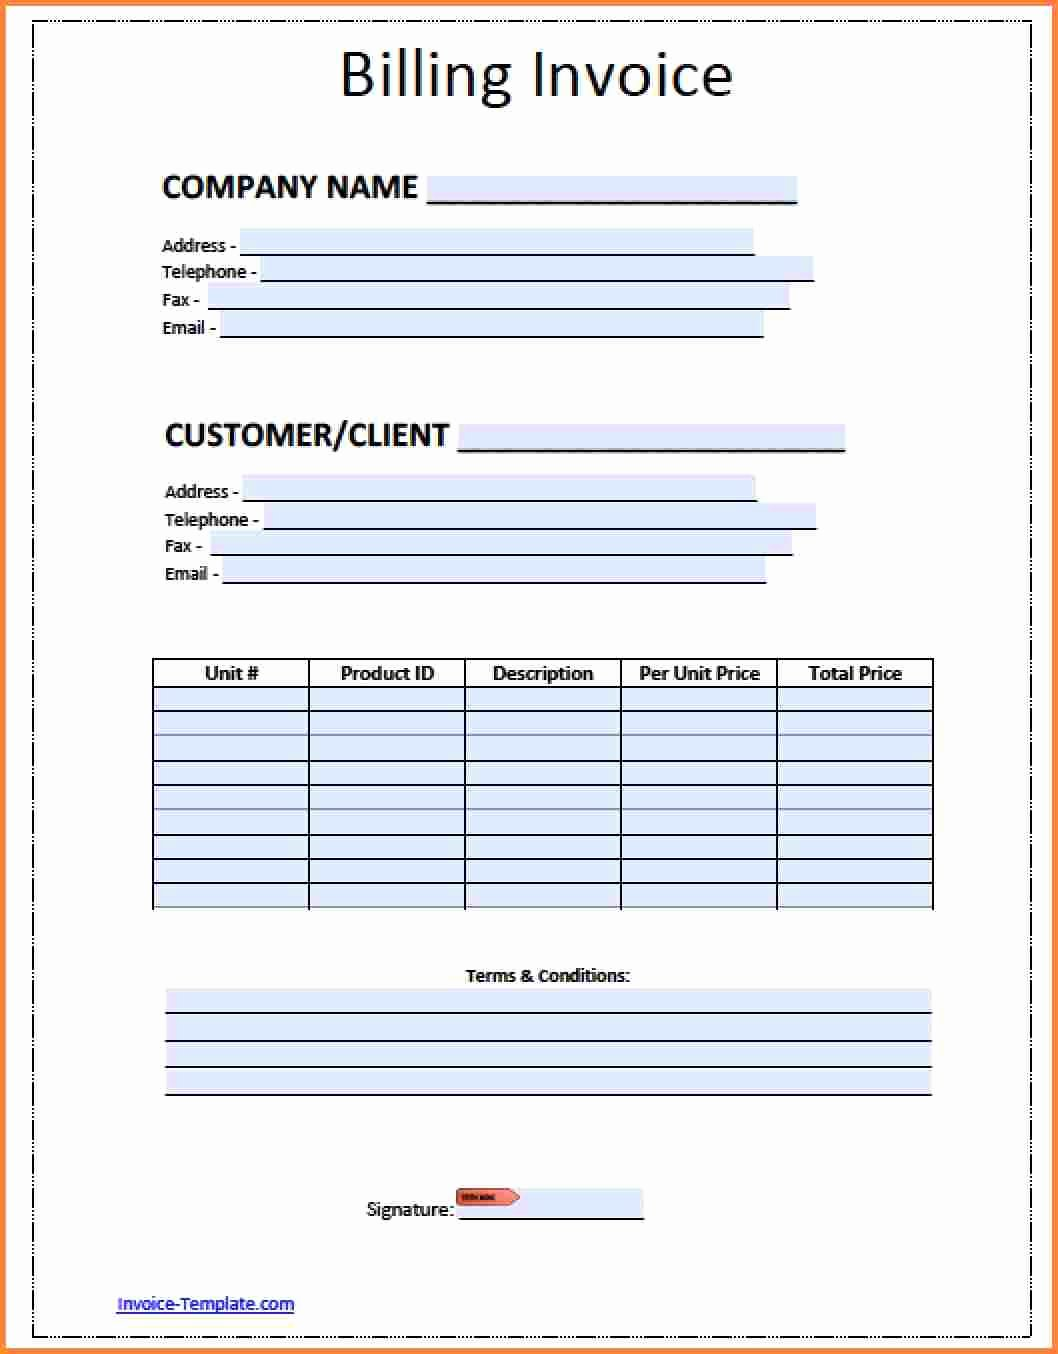 Billing Invoice Template Word Inspirational 9 format Of Invoice Bill In Word